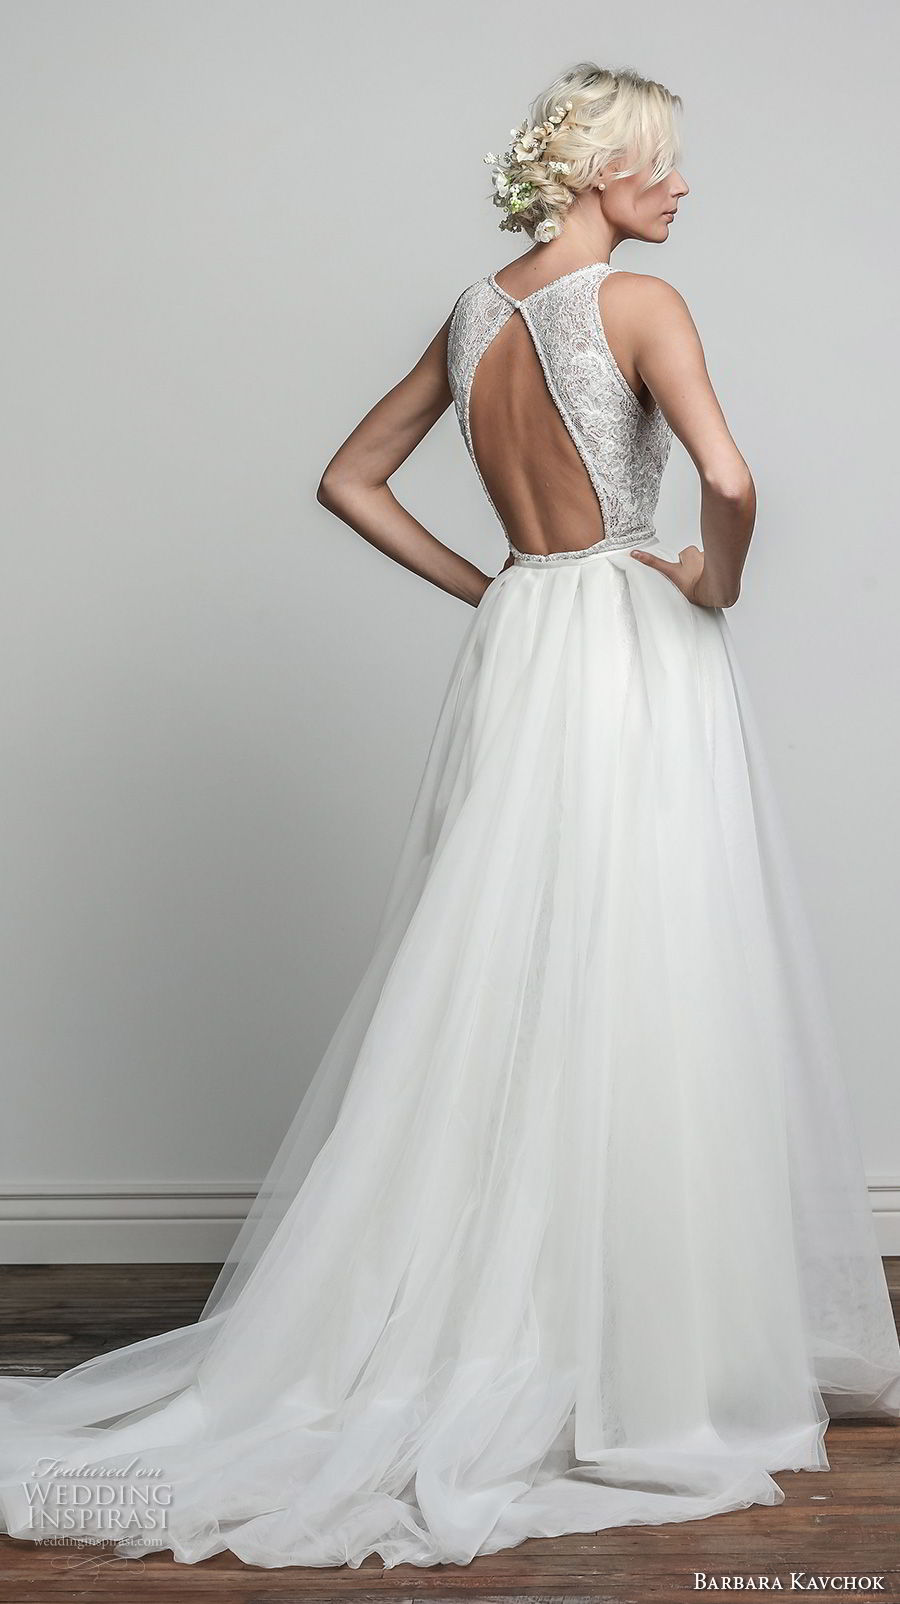 barbara kavchok spring 2018 bridal sleeveless deep plunging v neck full embellishment elegant romantic sheath wedding dress a line overskirt keyhole back chapel train (iris) bv